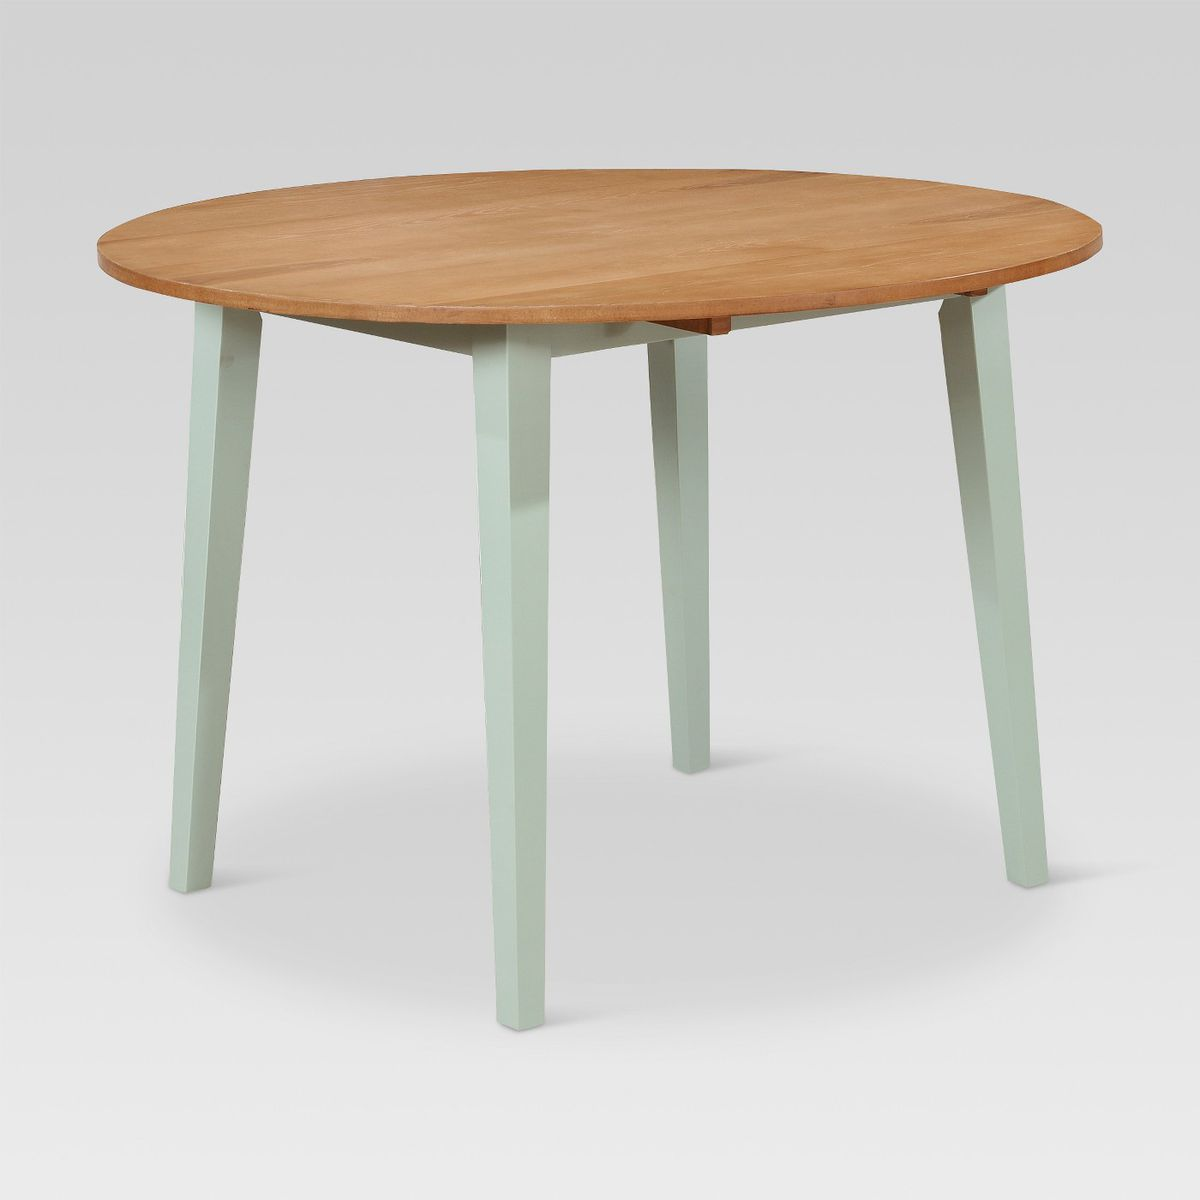 Modern Drop Leaf Tables Small Spaces Small Space Furniture Best Buys For Tiny Apartments Curbed